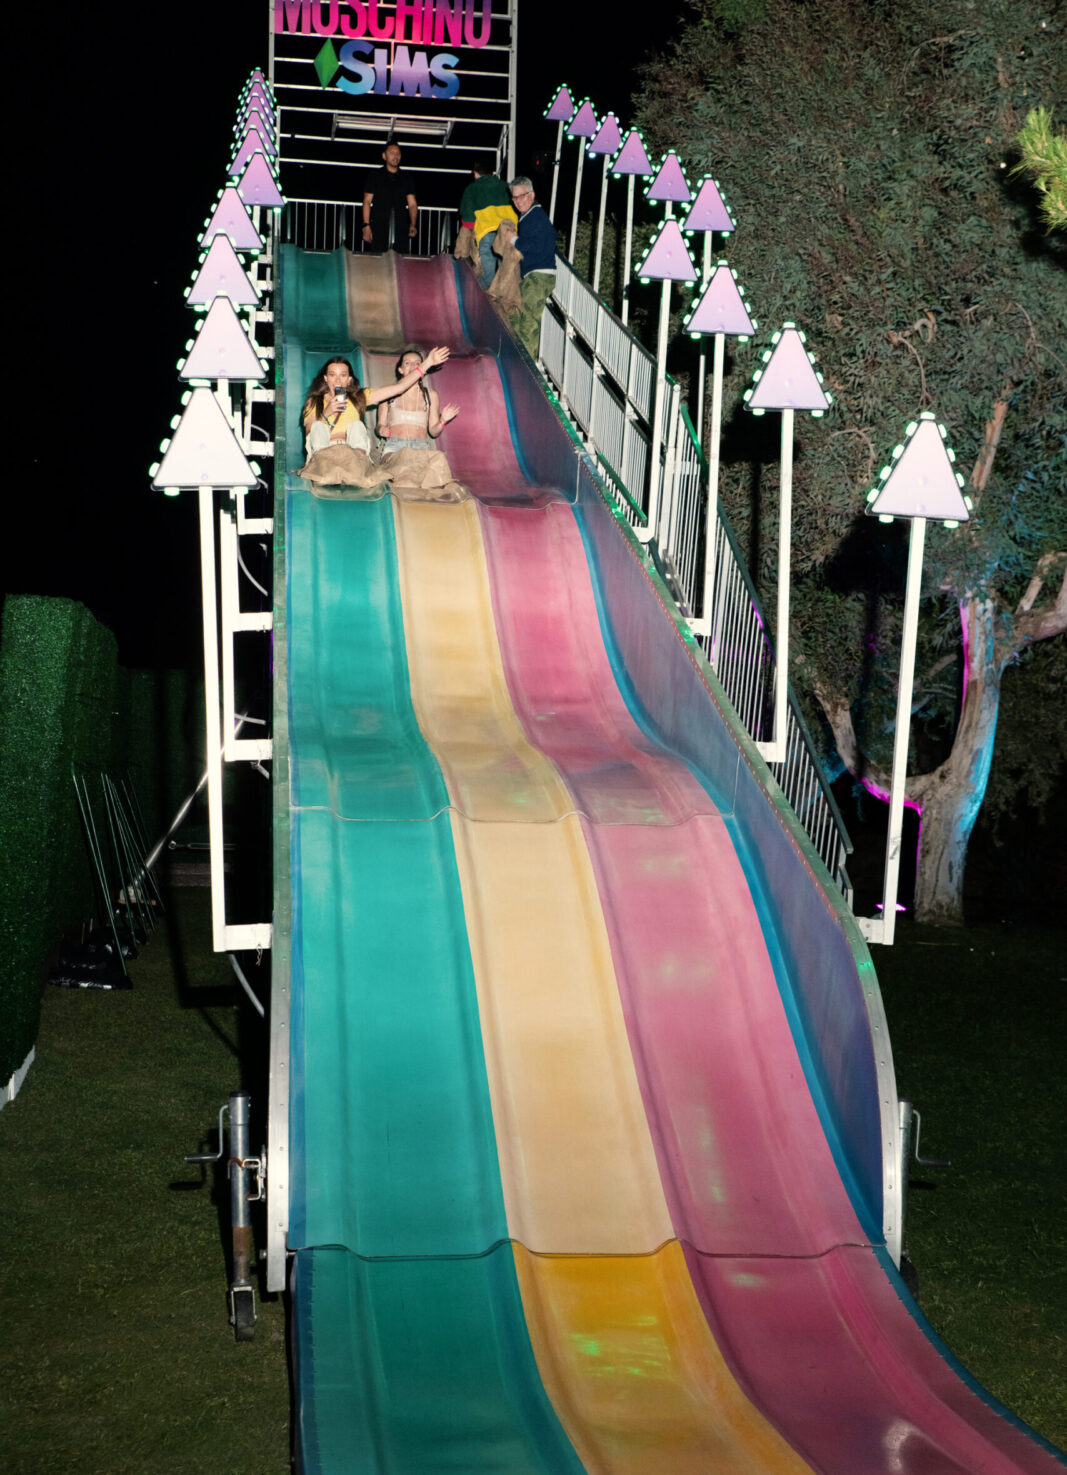 giant slide at sonic block party by marketing agency allied experiential